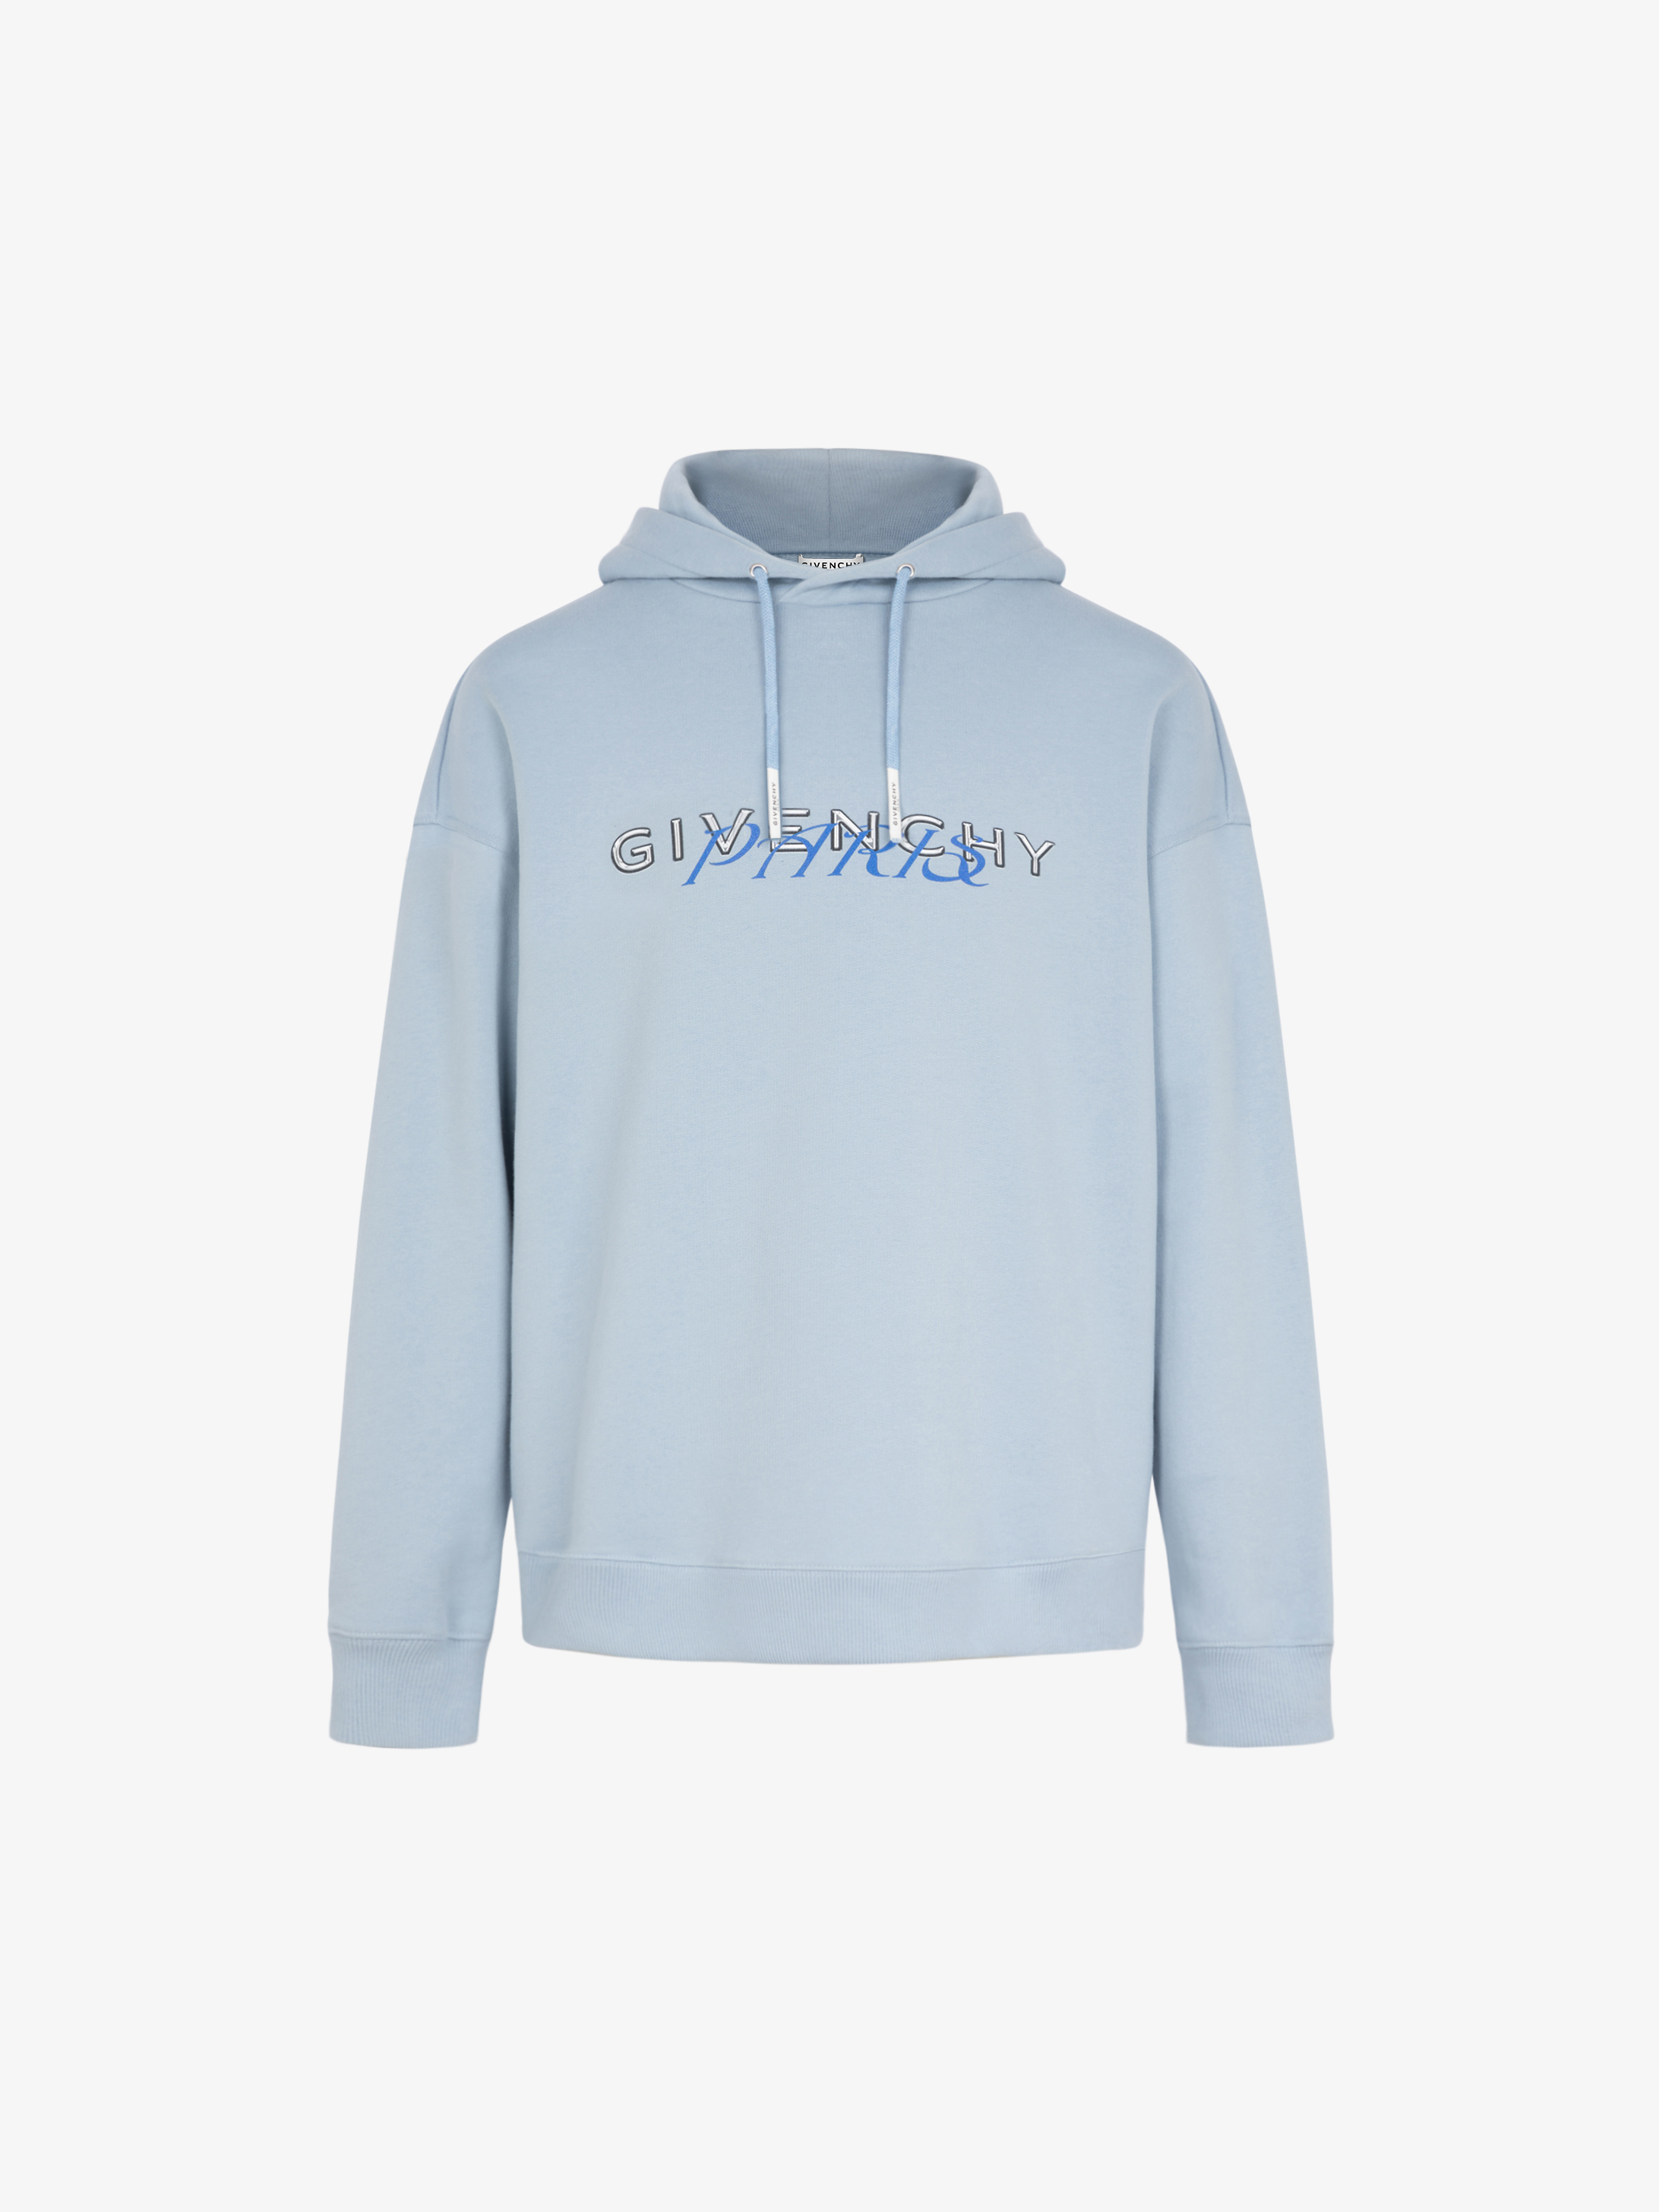 GIVENCHY ADDRESS band hoodie